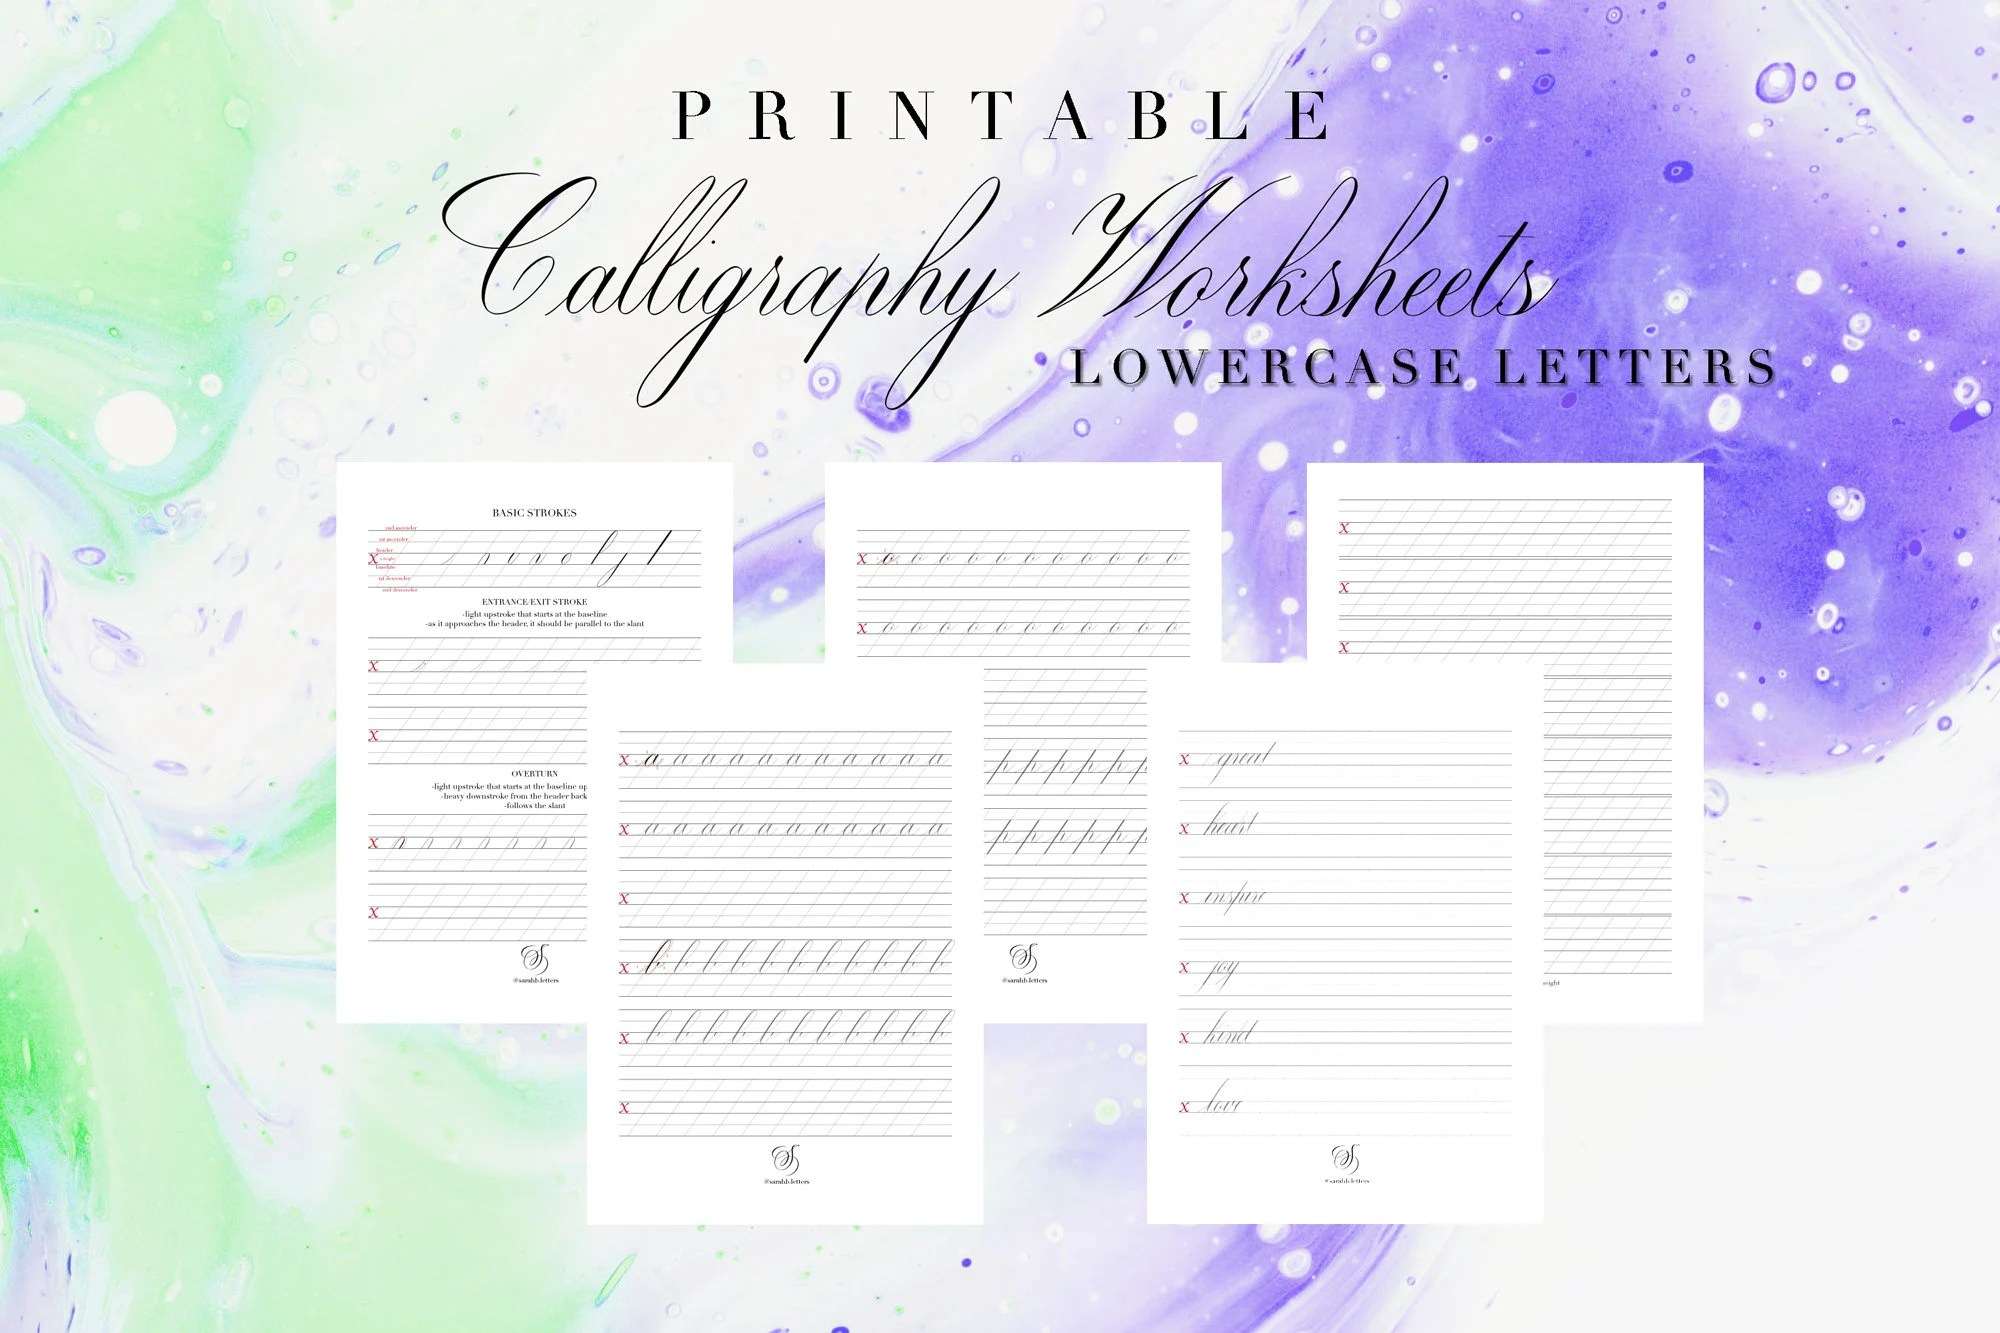 Lowercase Pointed Pen Calligraphy Worksheets Copperplate